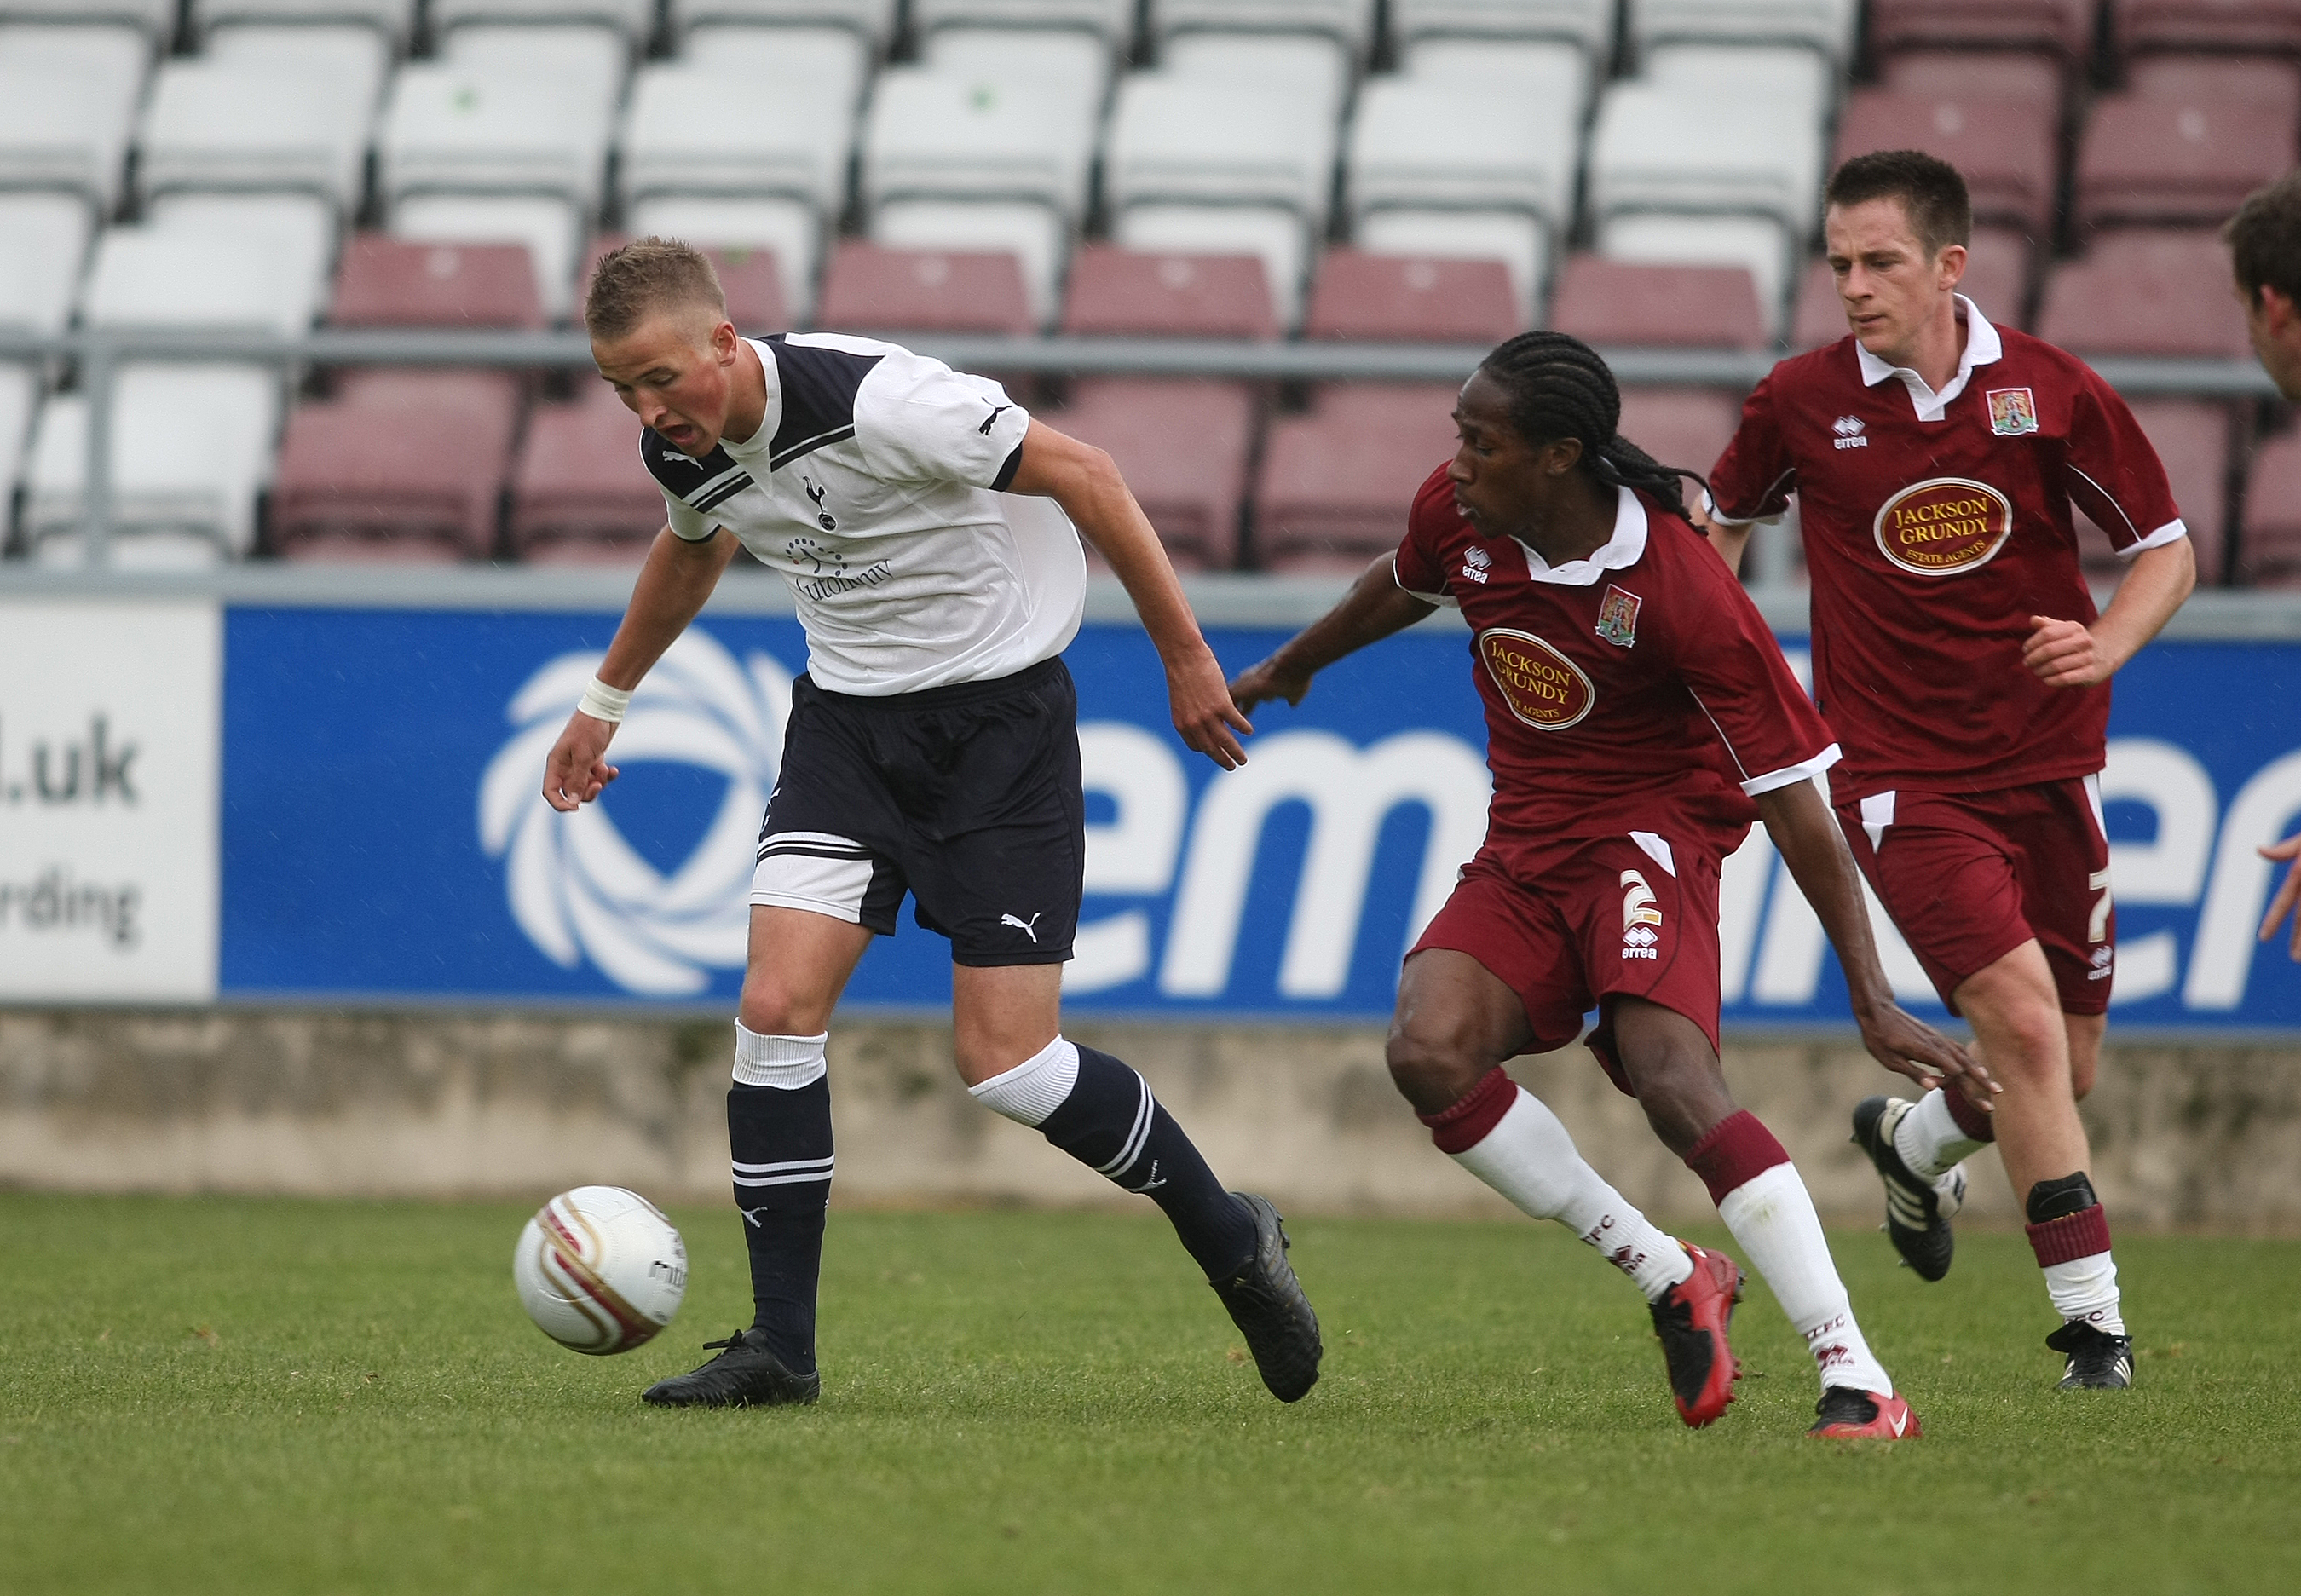 NORTHAMPTON, ENGLAND - OCTOBER 19:  Harry Kane of Tottenham Hotspur moves away with the ball from Paul Rodgers of Northampton Town during a Behind Closed Doors Friendly Match between Northampton Town and Tottenham Hotspur at Sixfields Stadium on October 1